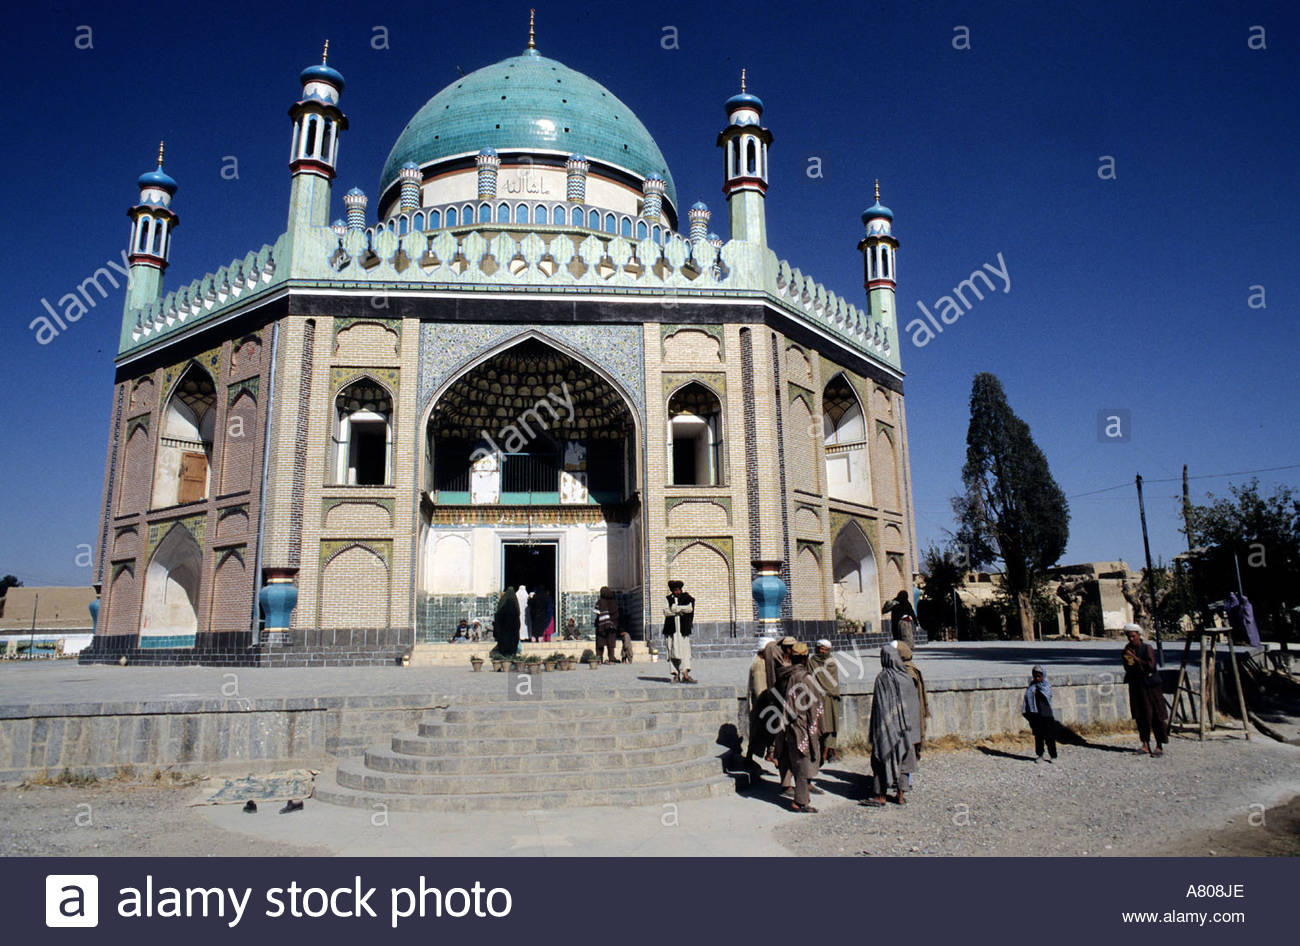 Baba Wali Shrine Kandahar, Afghanistan, Kandahar, mosque Stock Photo, Royalty Free Image ...